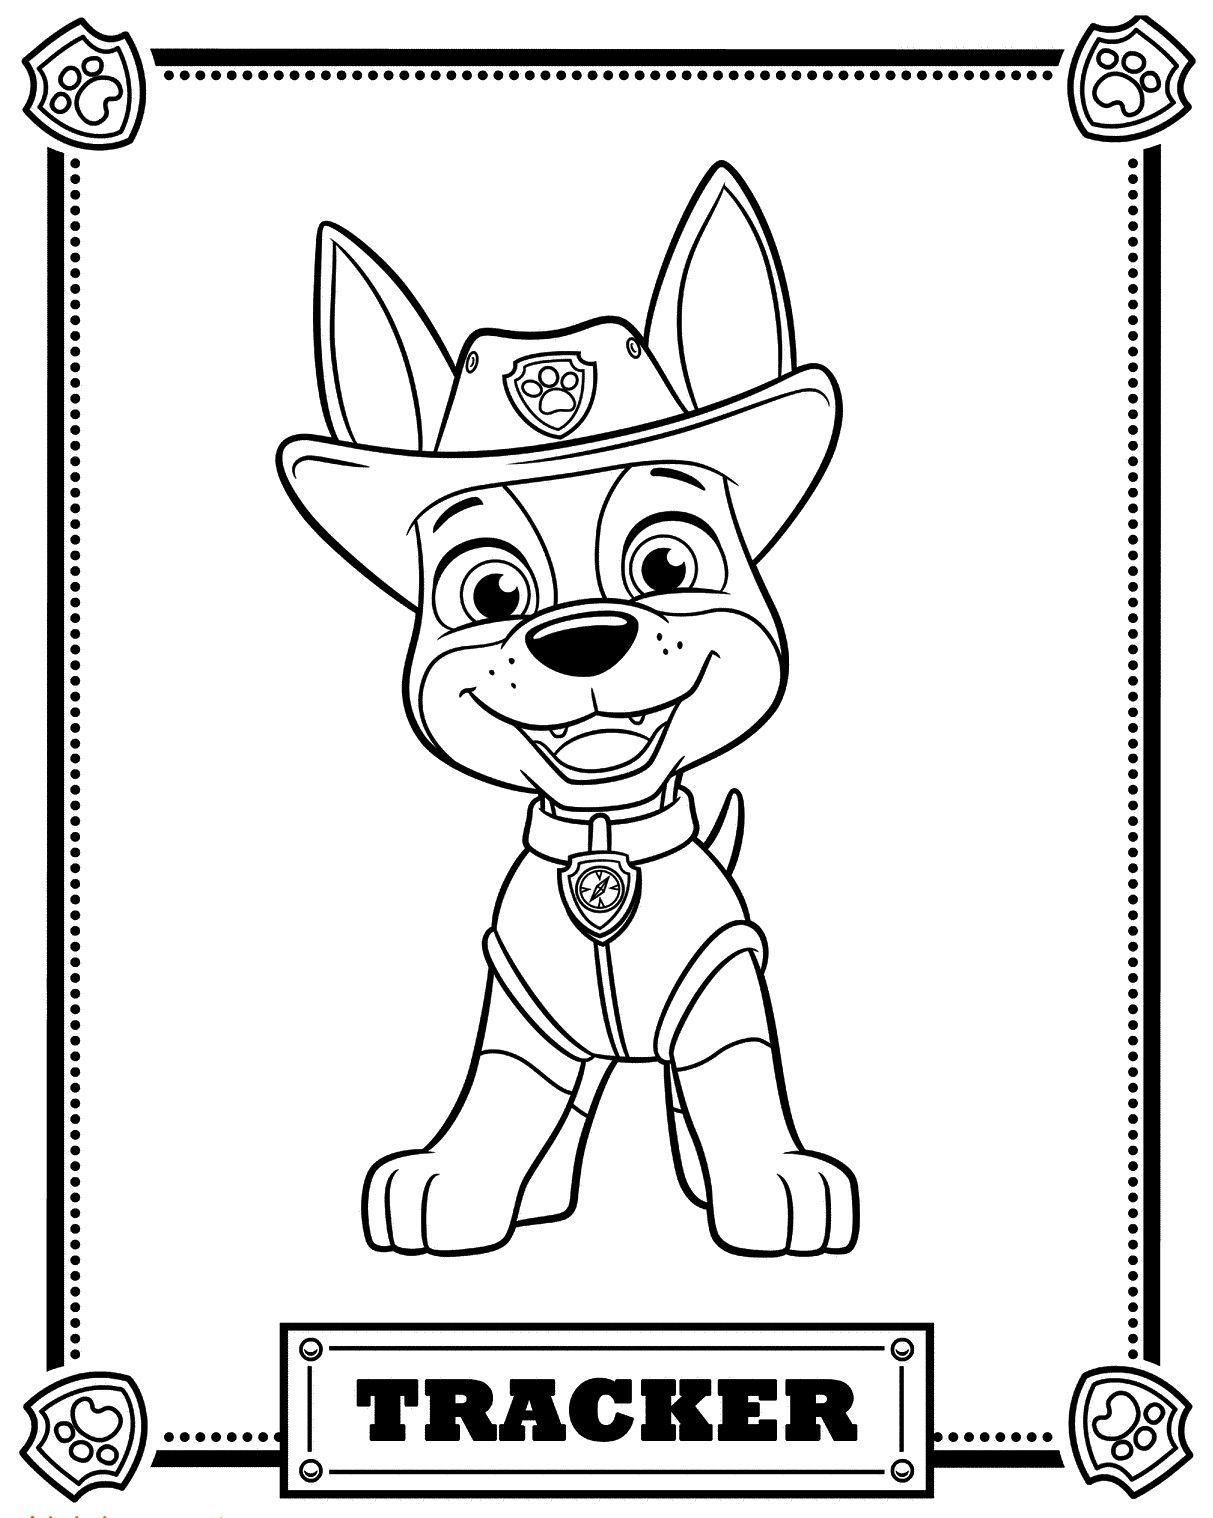 rescue dog coloring pages pin by super creative kids on kids coloring paw patrol dog pages coloring rescue